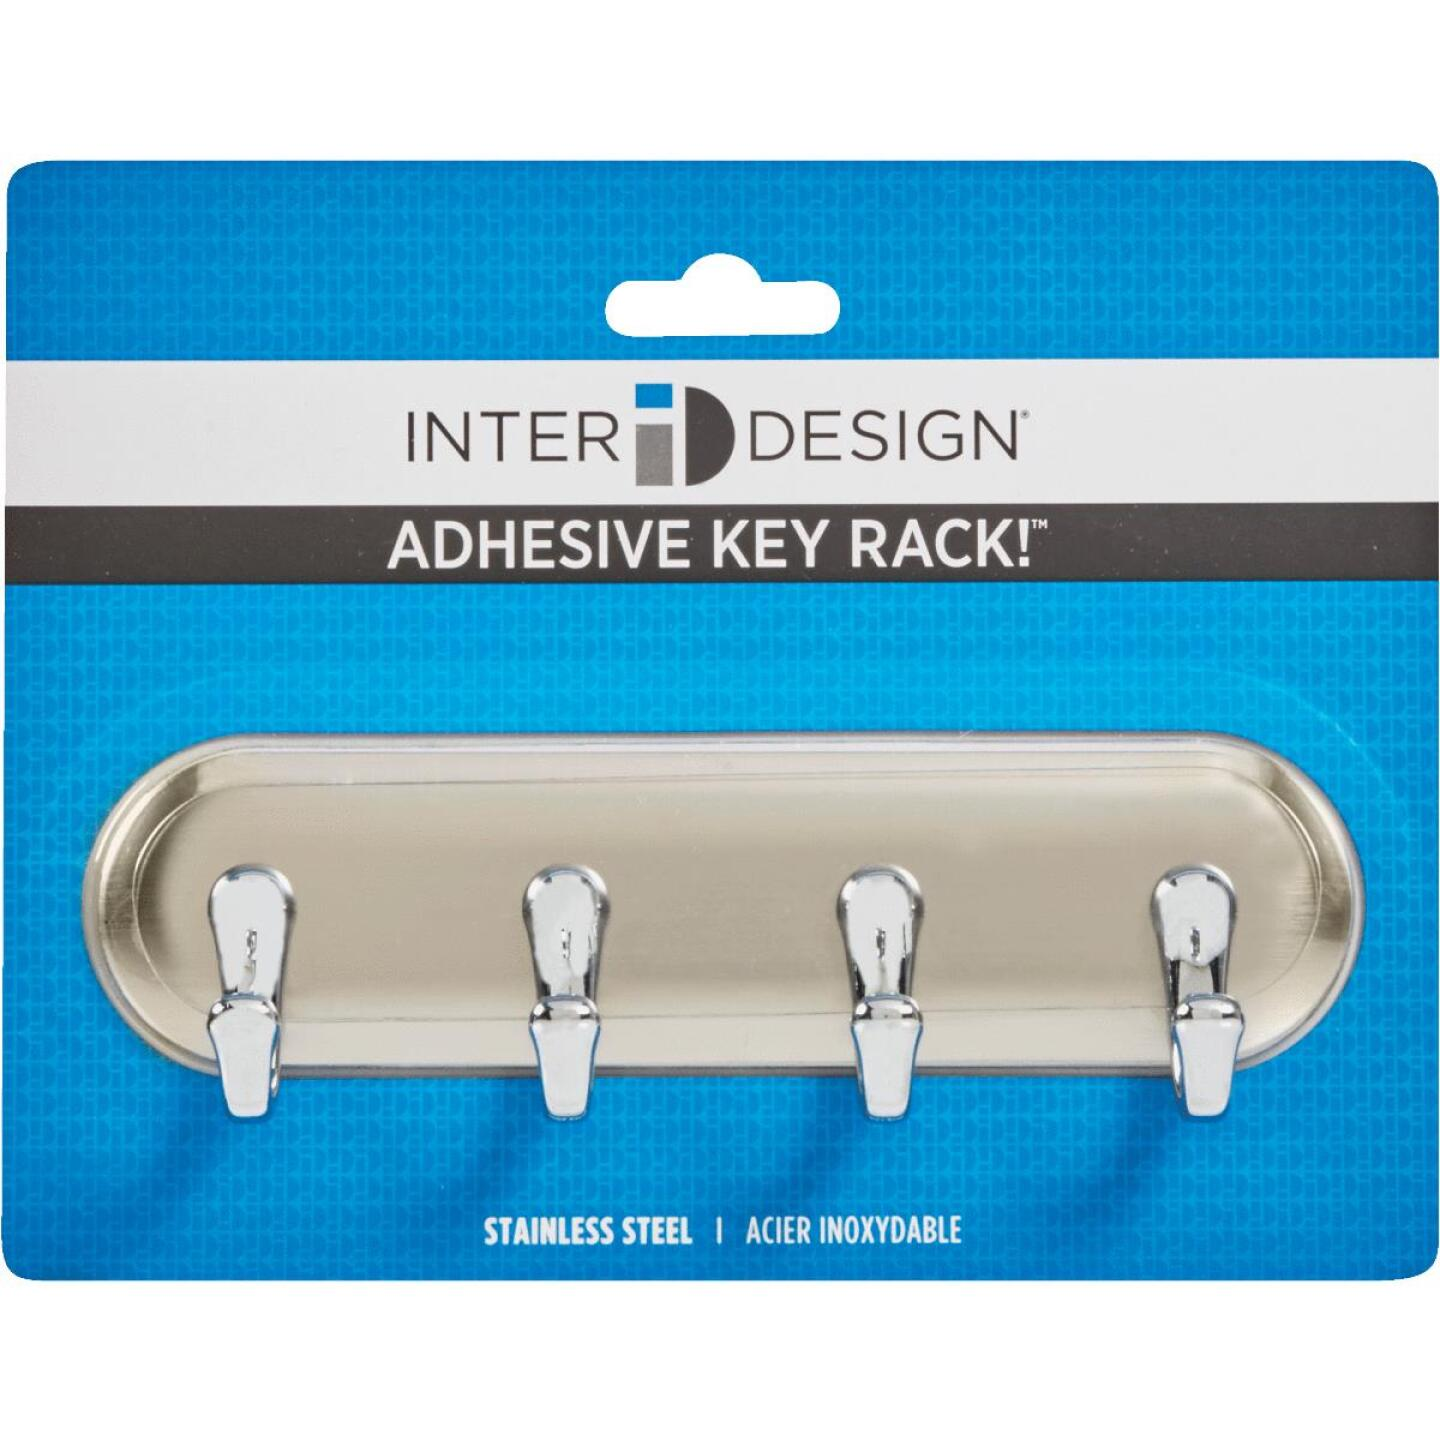 InterDesign Blumz Brushed Stainless Steel York Key Rack Image 2